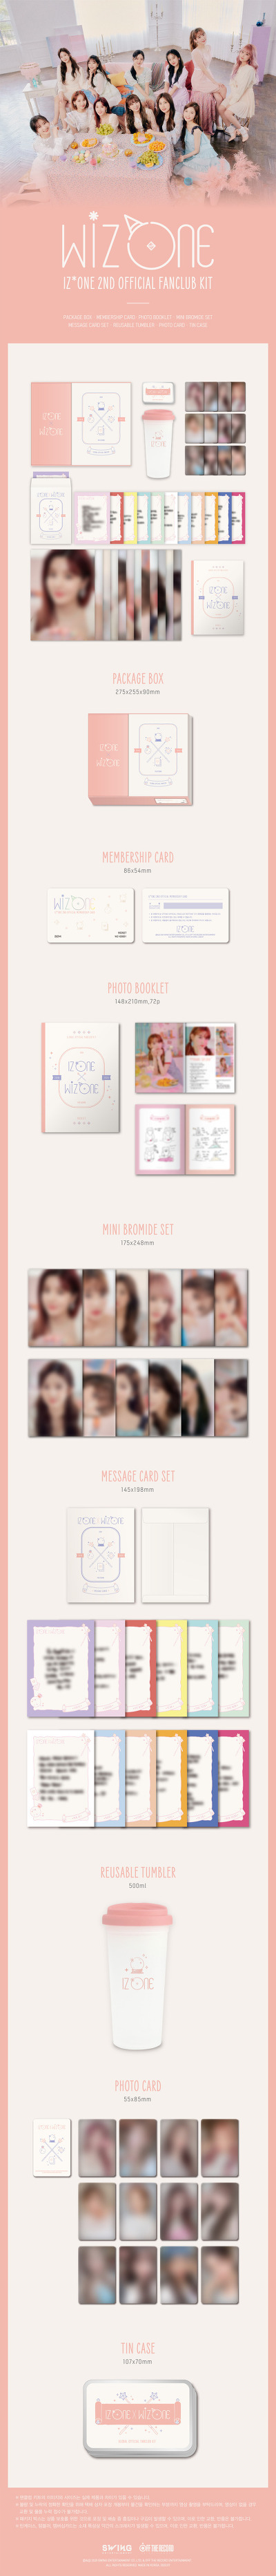 WIZ*ONE 2nd Gen Fankit